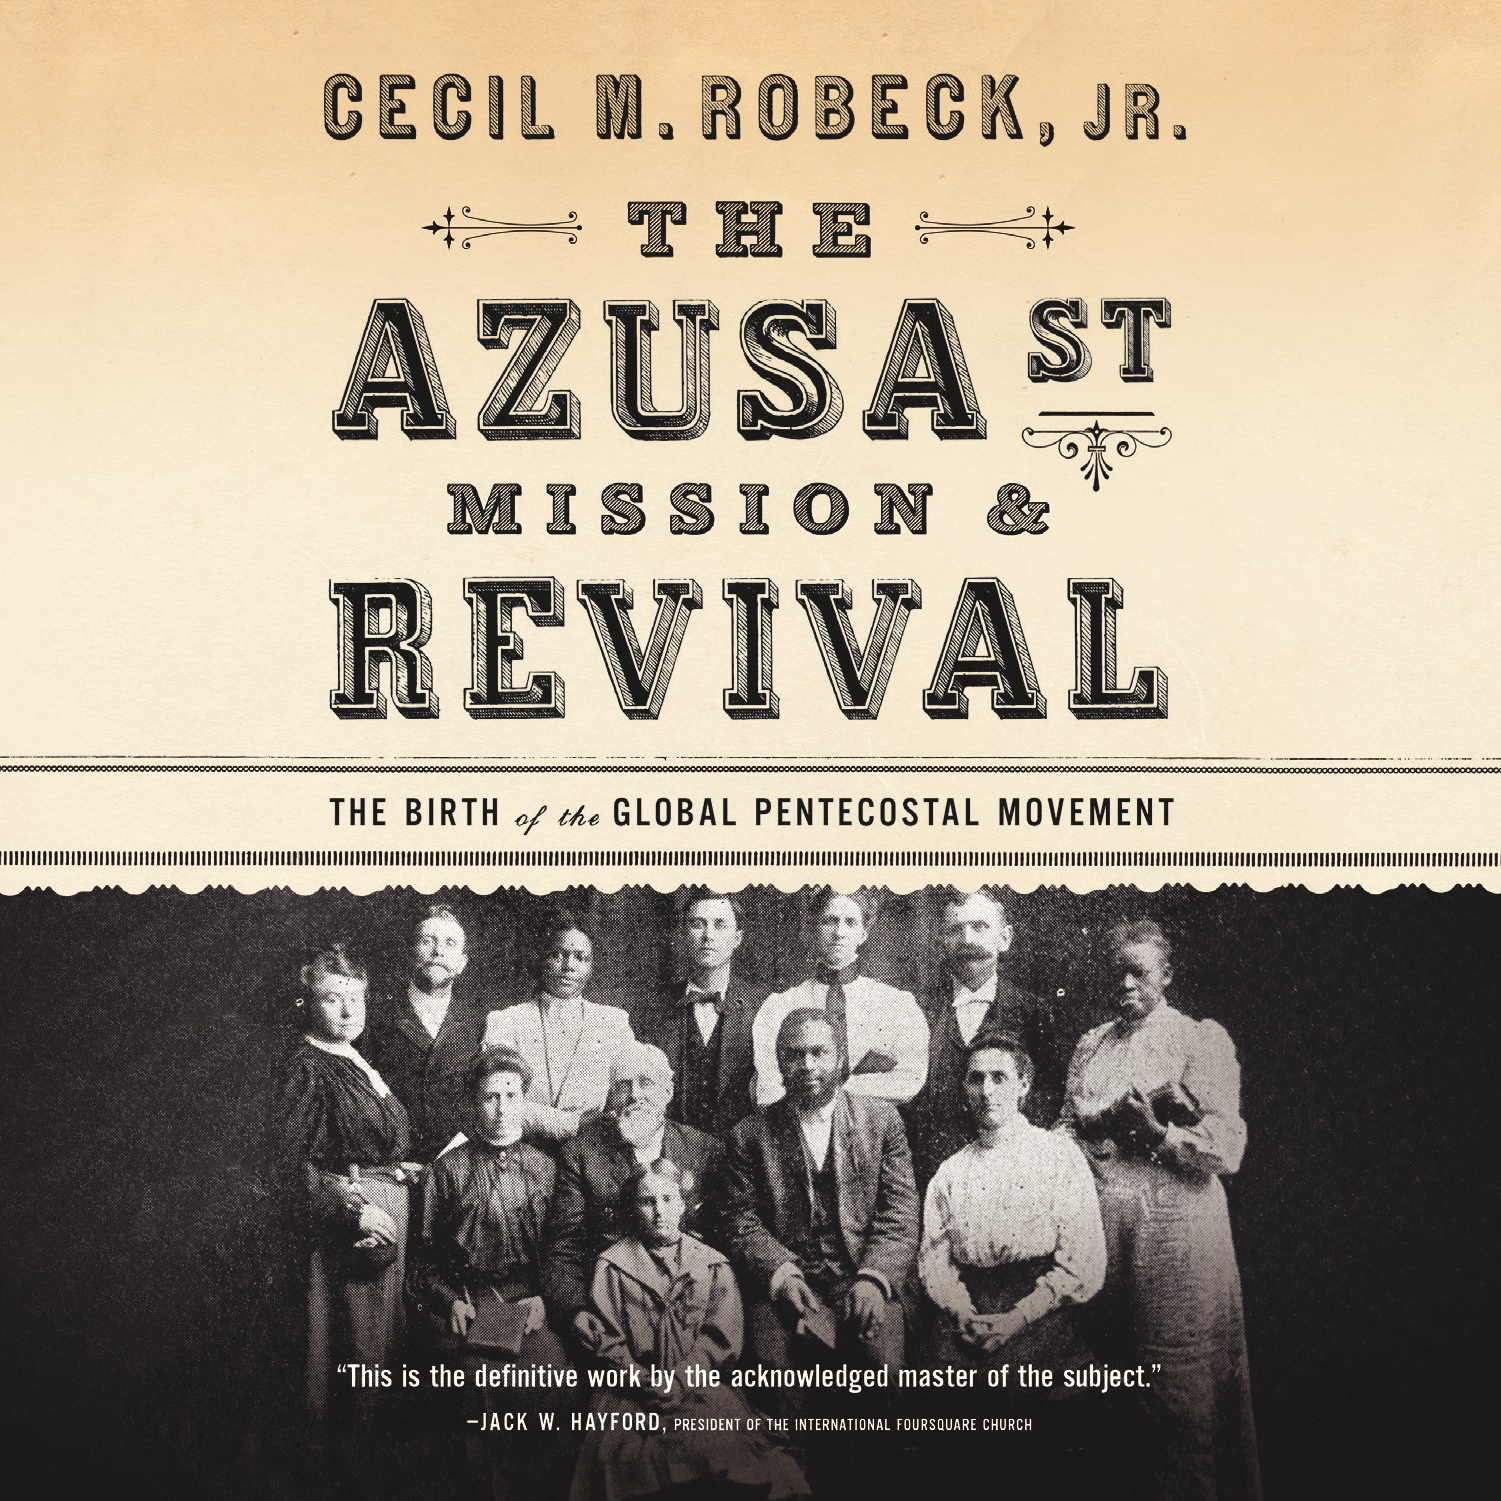 the azusa street revival of 1906 to The azusa street revival marks a period in the history of the pentecostal movement that is remarkably similar to the long-lasting effects of the san francisco earthquake of the same period.